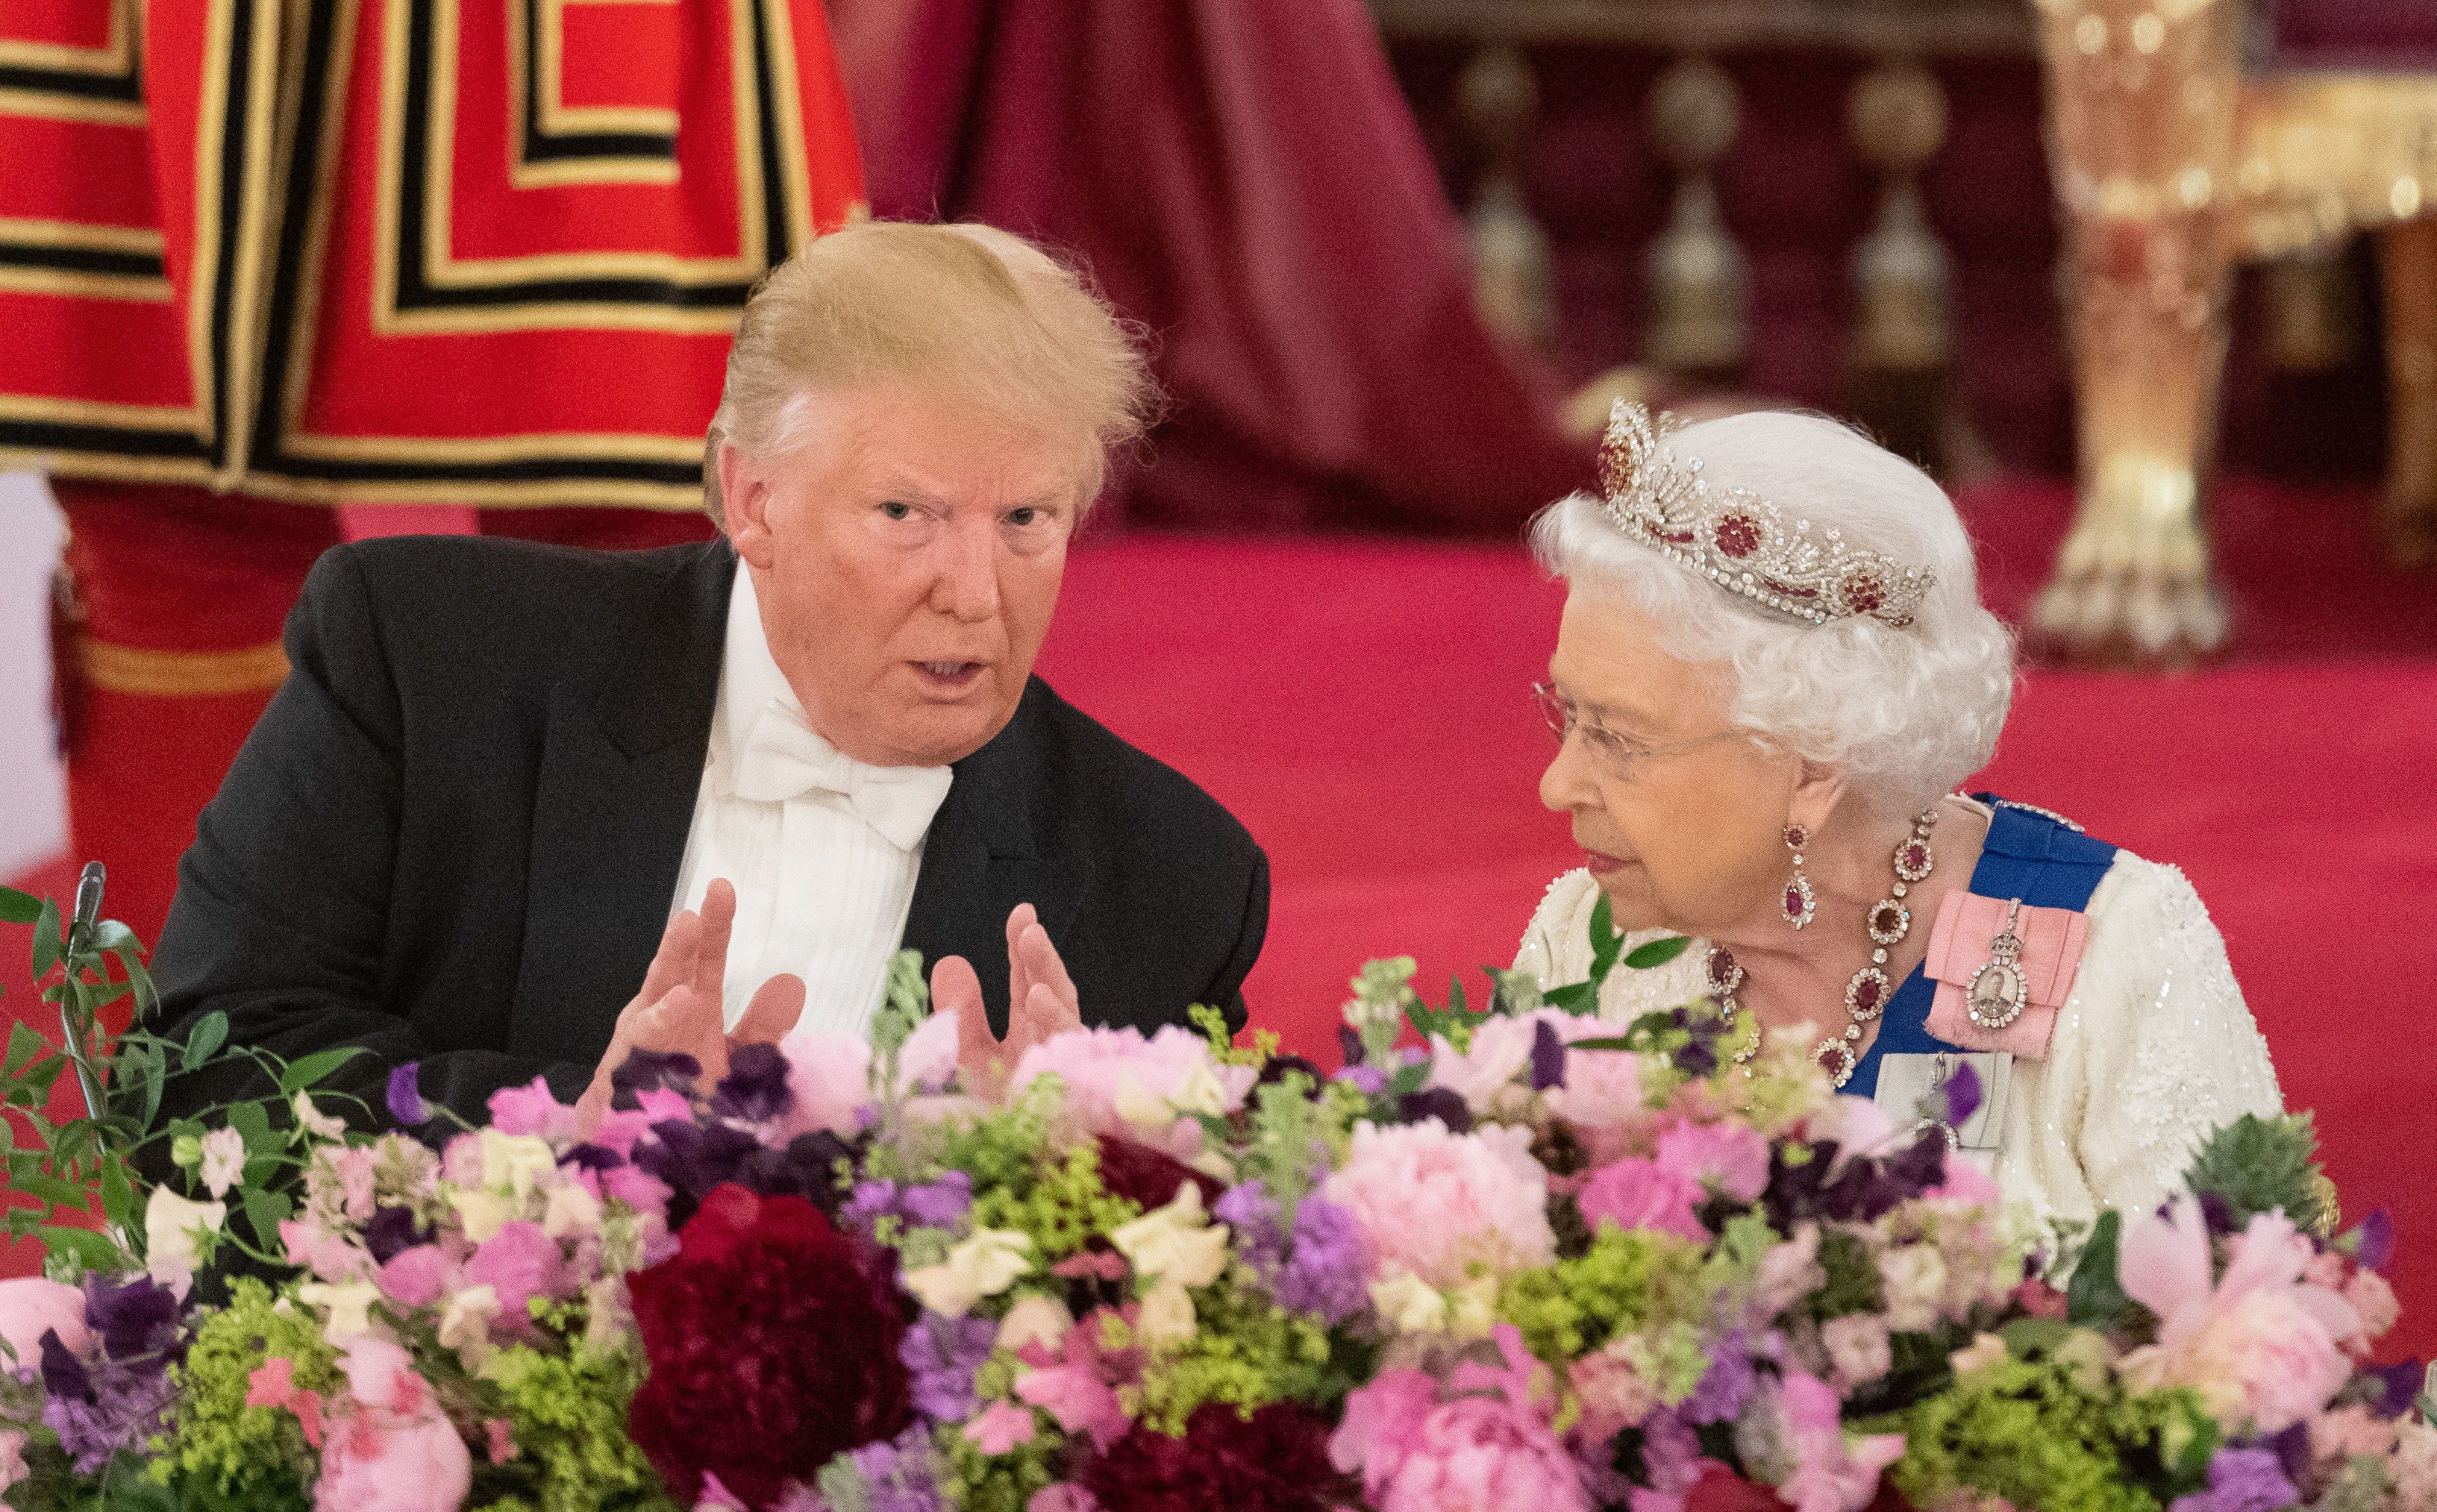 """President Trump Weighs In on Harry and Meghan: """"I Don't Think This Should Be Happening"""""""